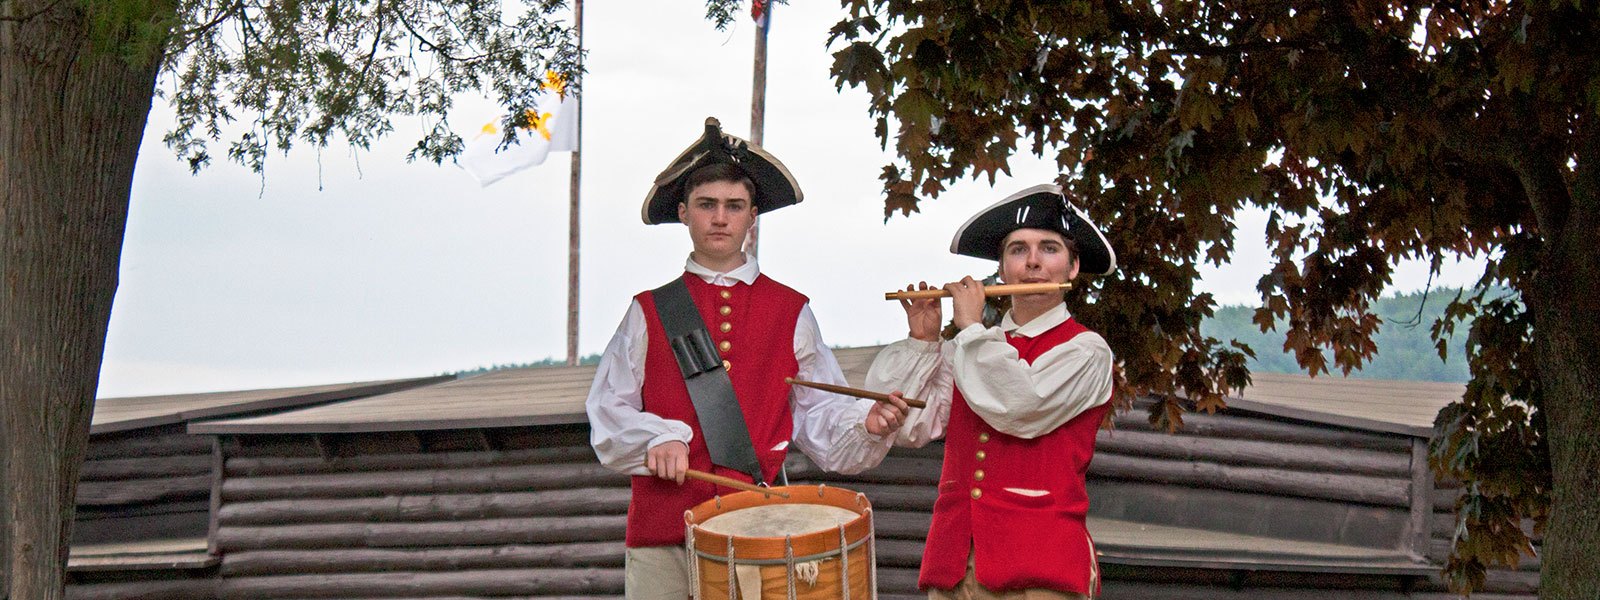 Tours of Fort William Henry